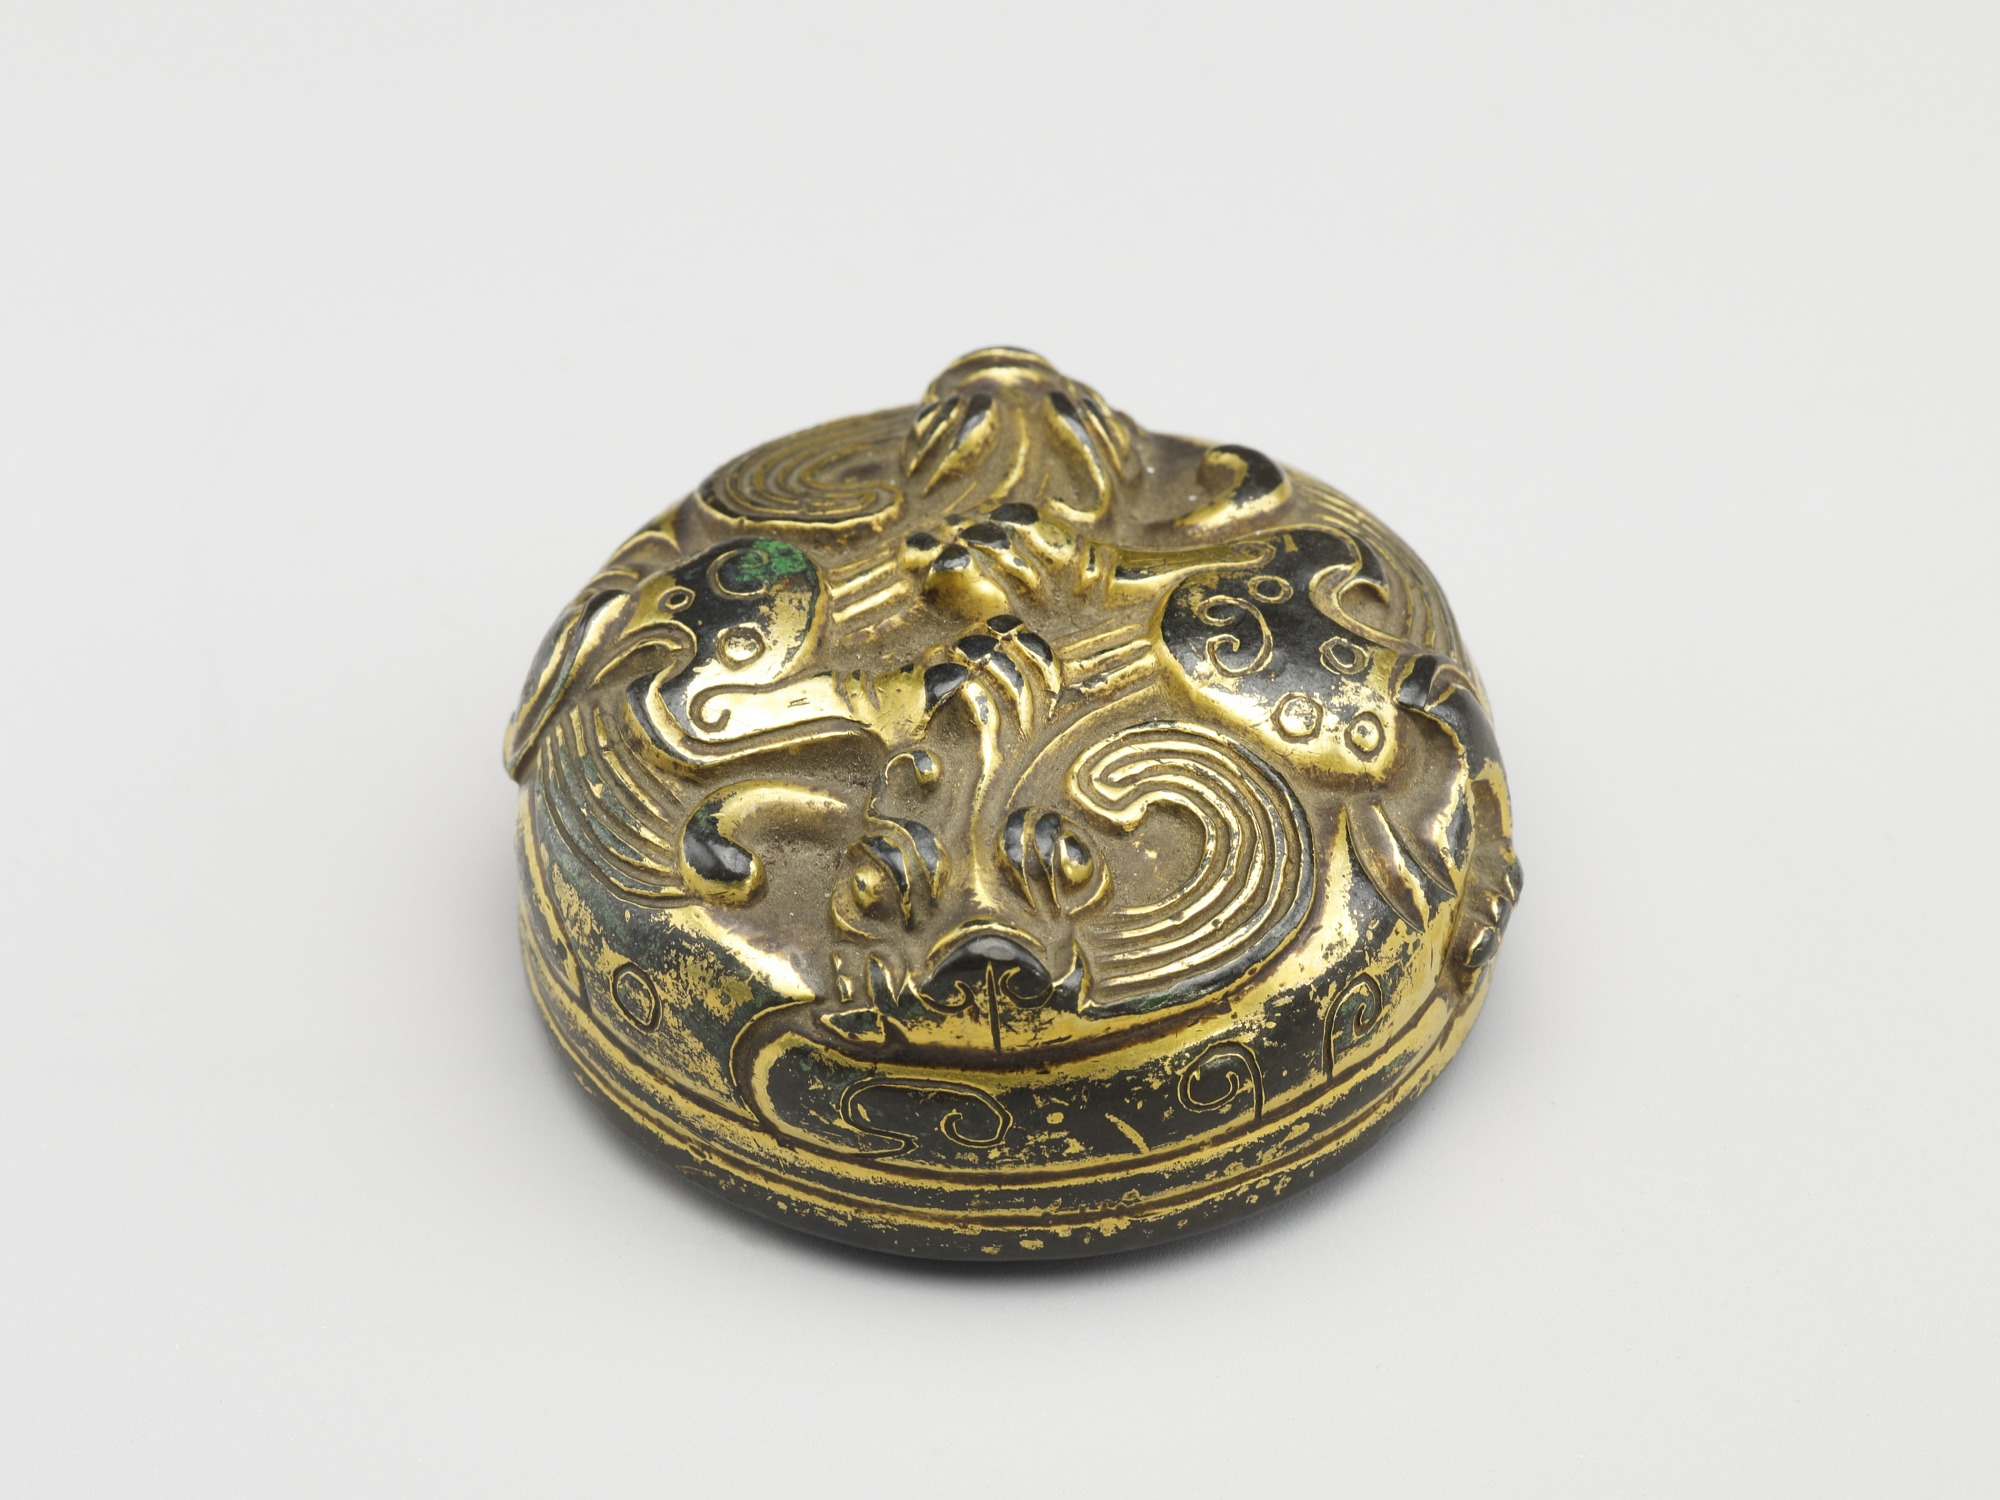 Ornament or weight